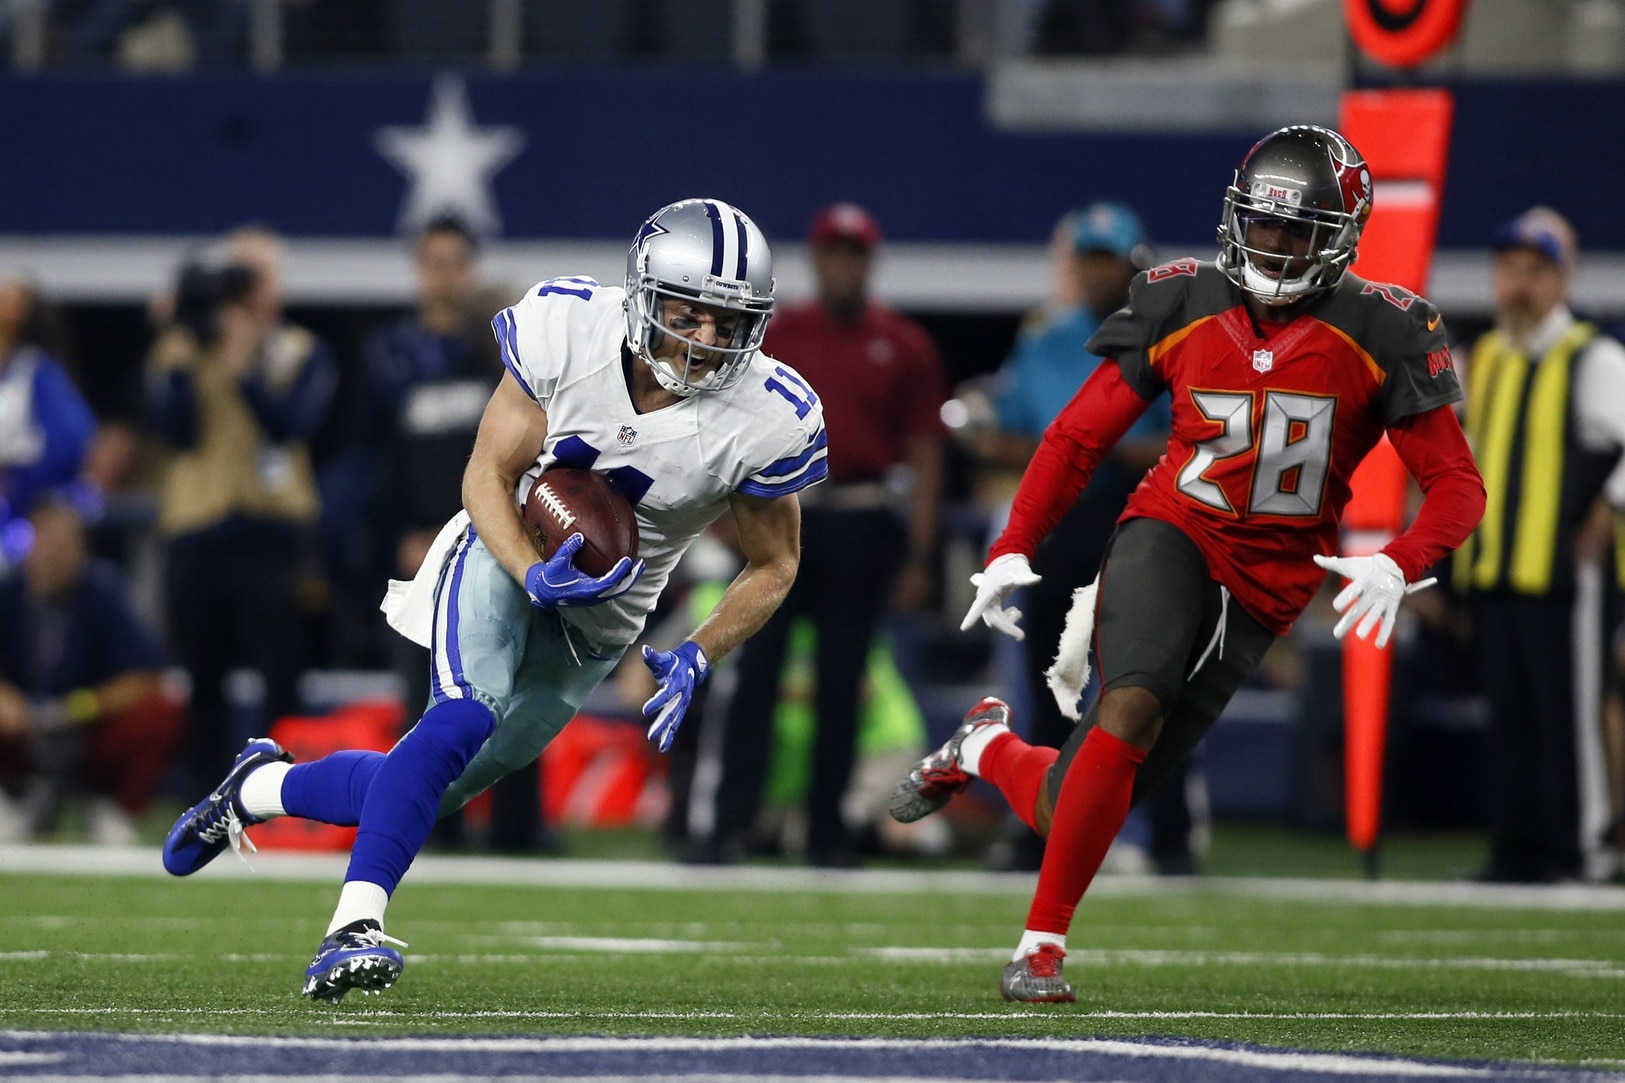 Buccaneers cornerback Vernon Hargreaves chases down Cole Beasley of the Dallas Cowboys